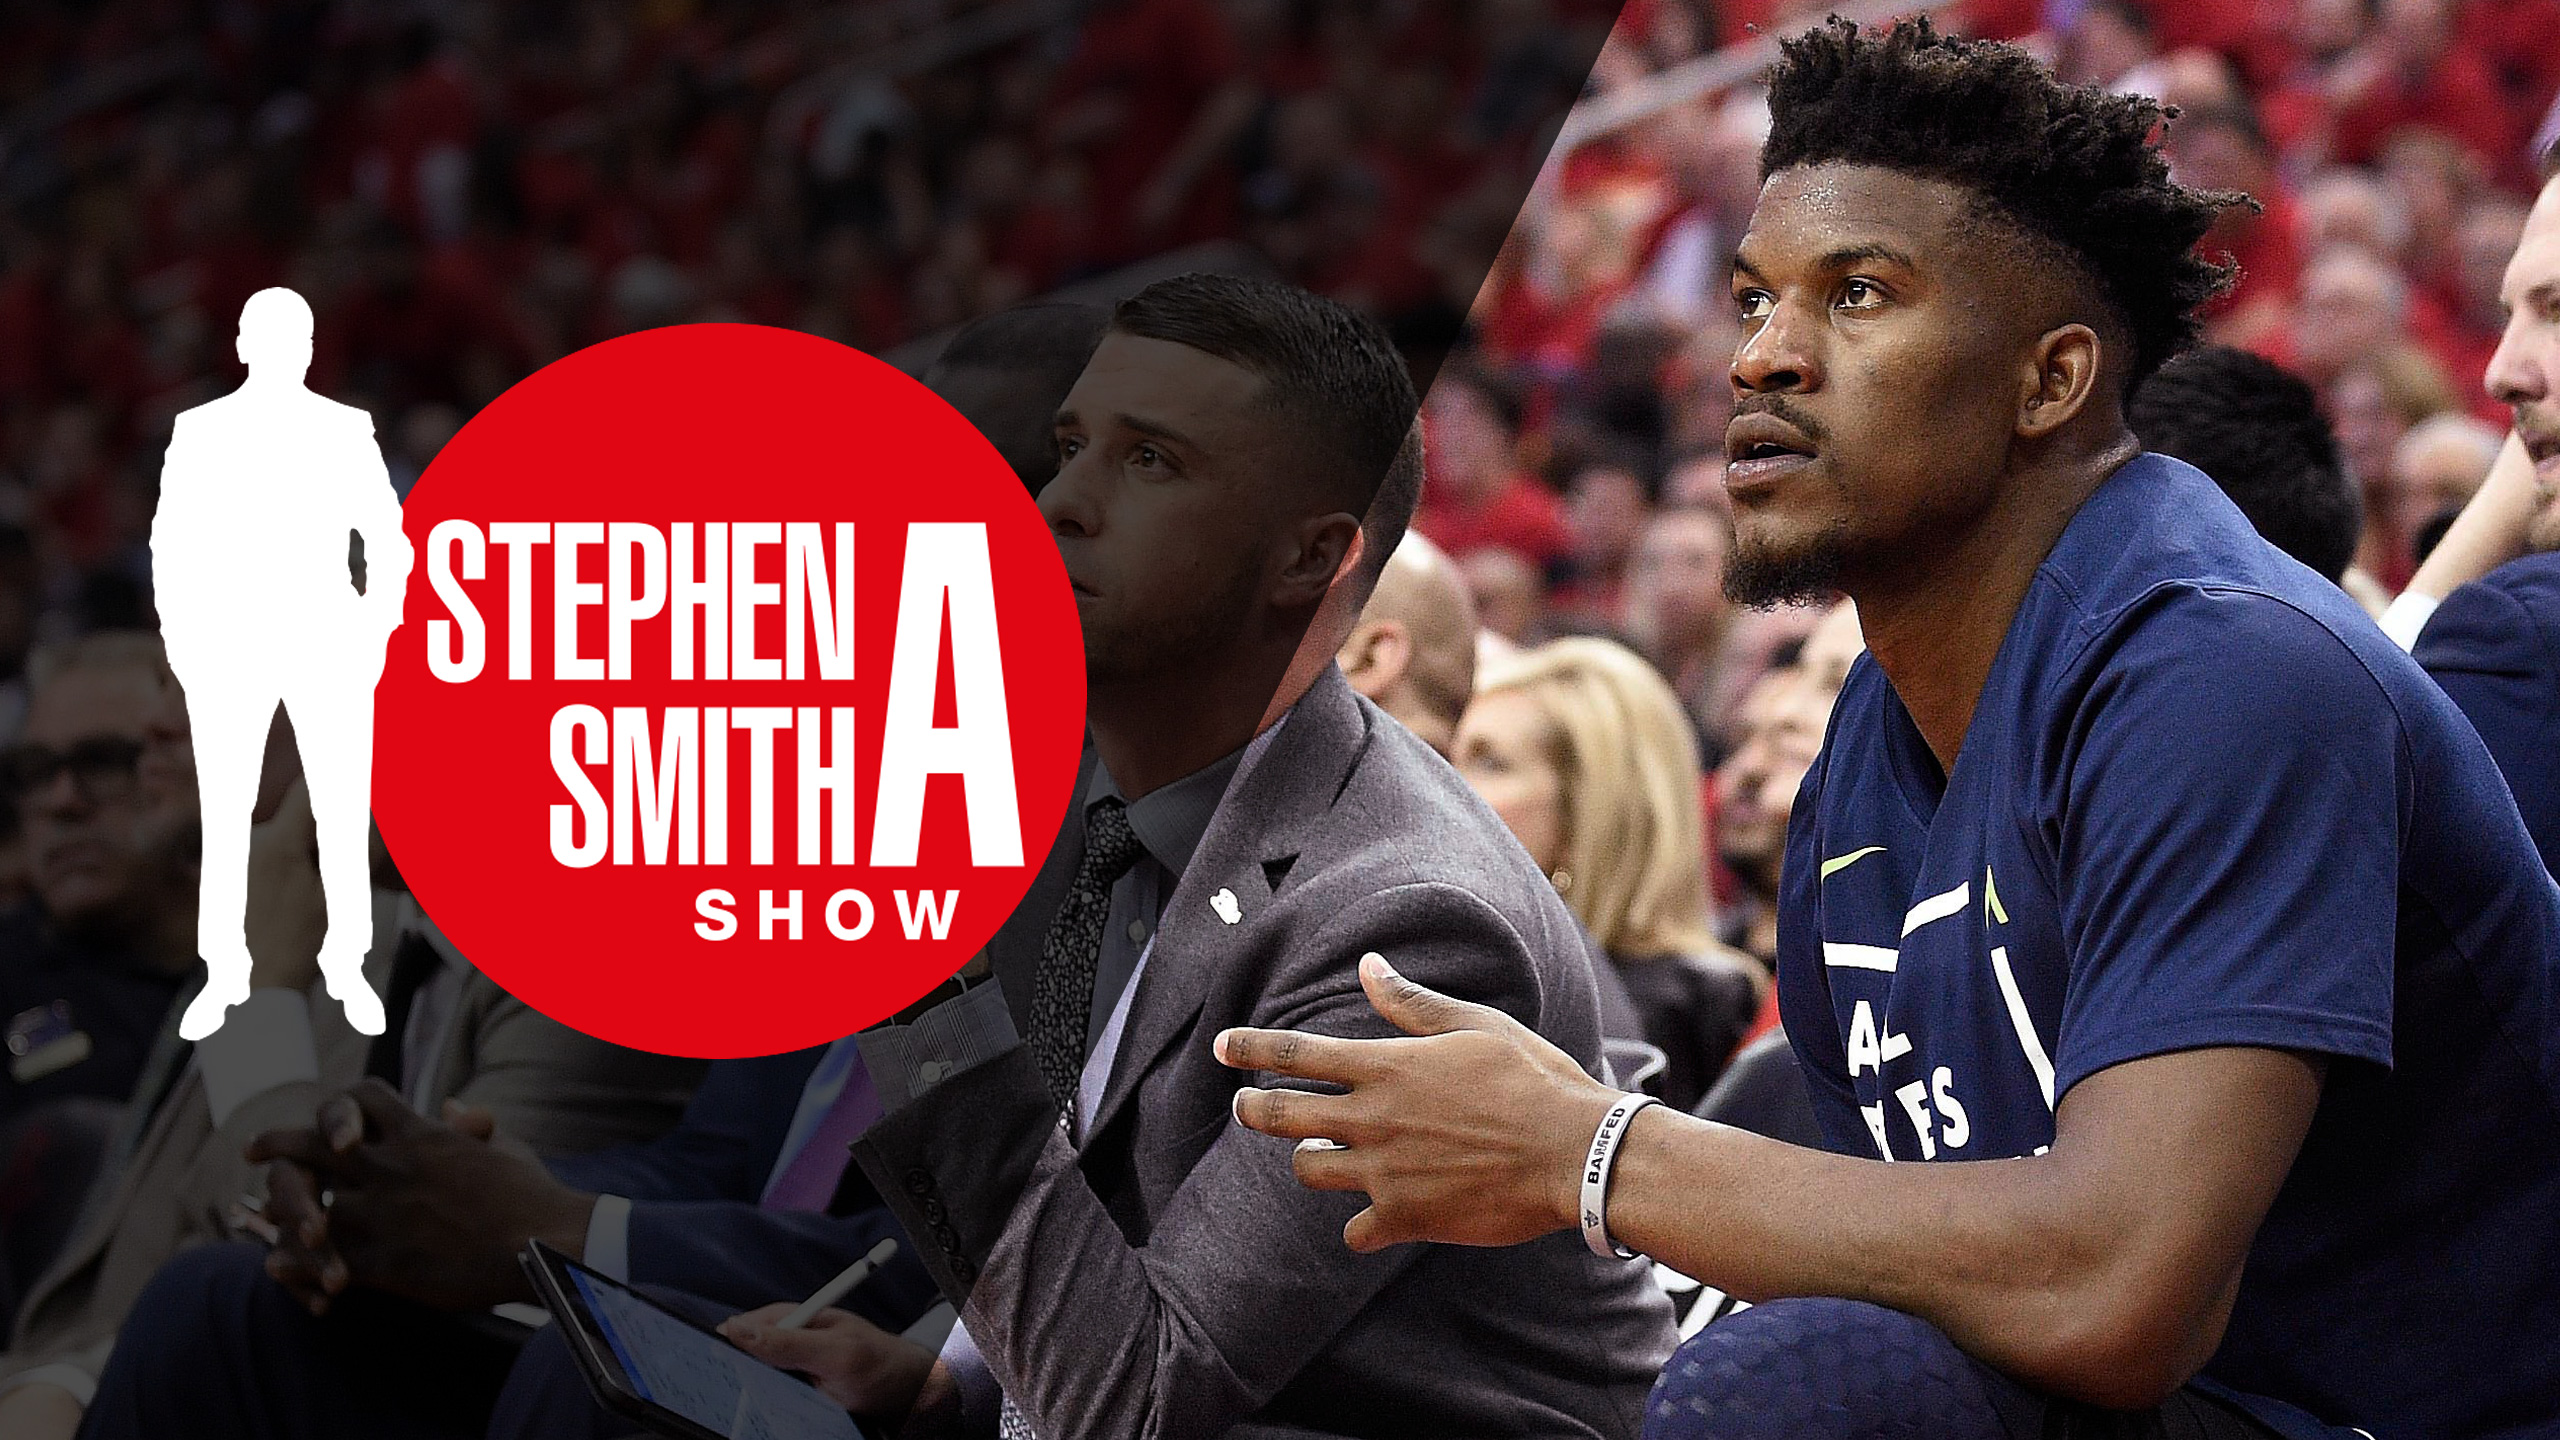 Thu, 9/20 - The Stephen A. Smith Show